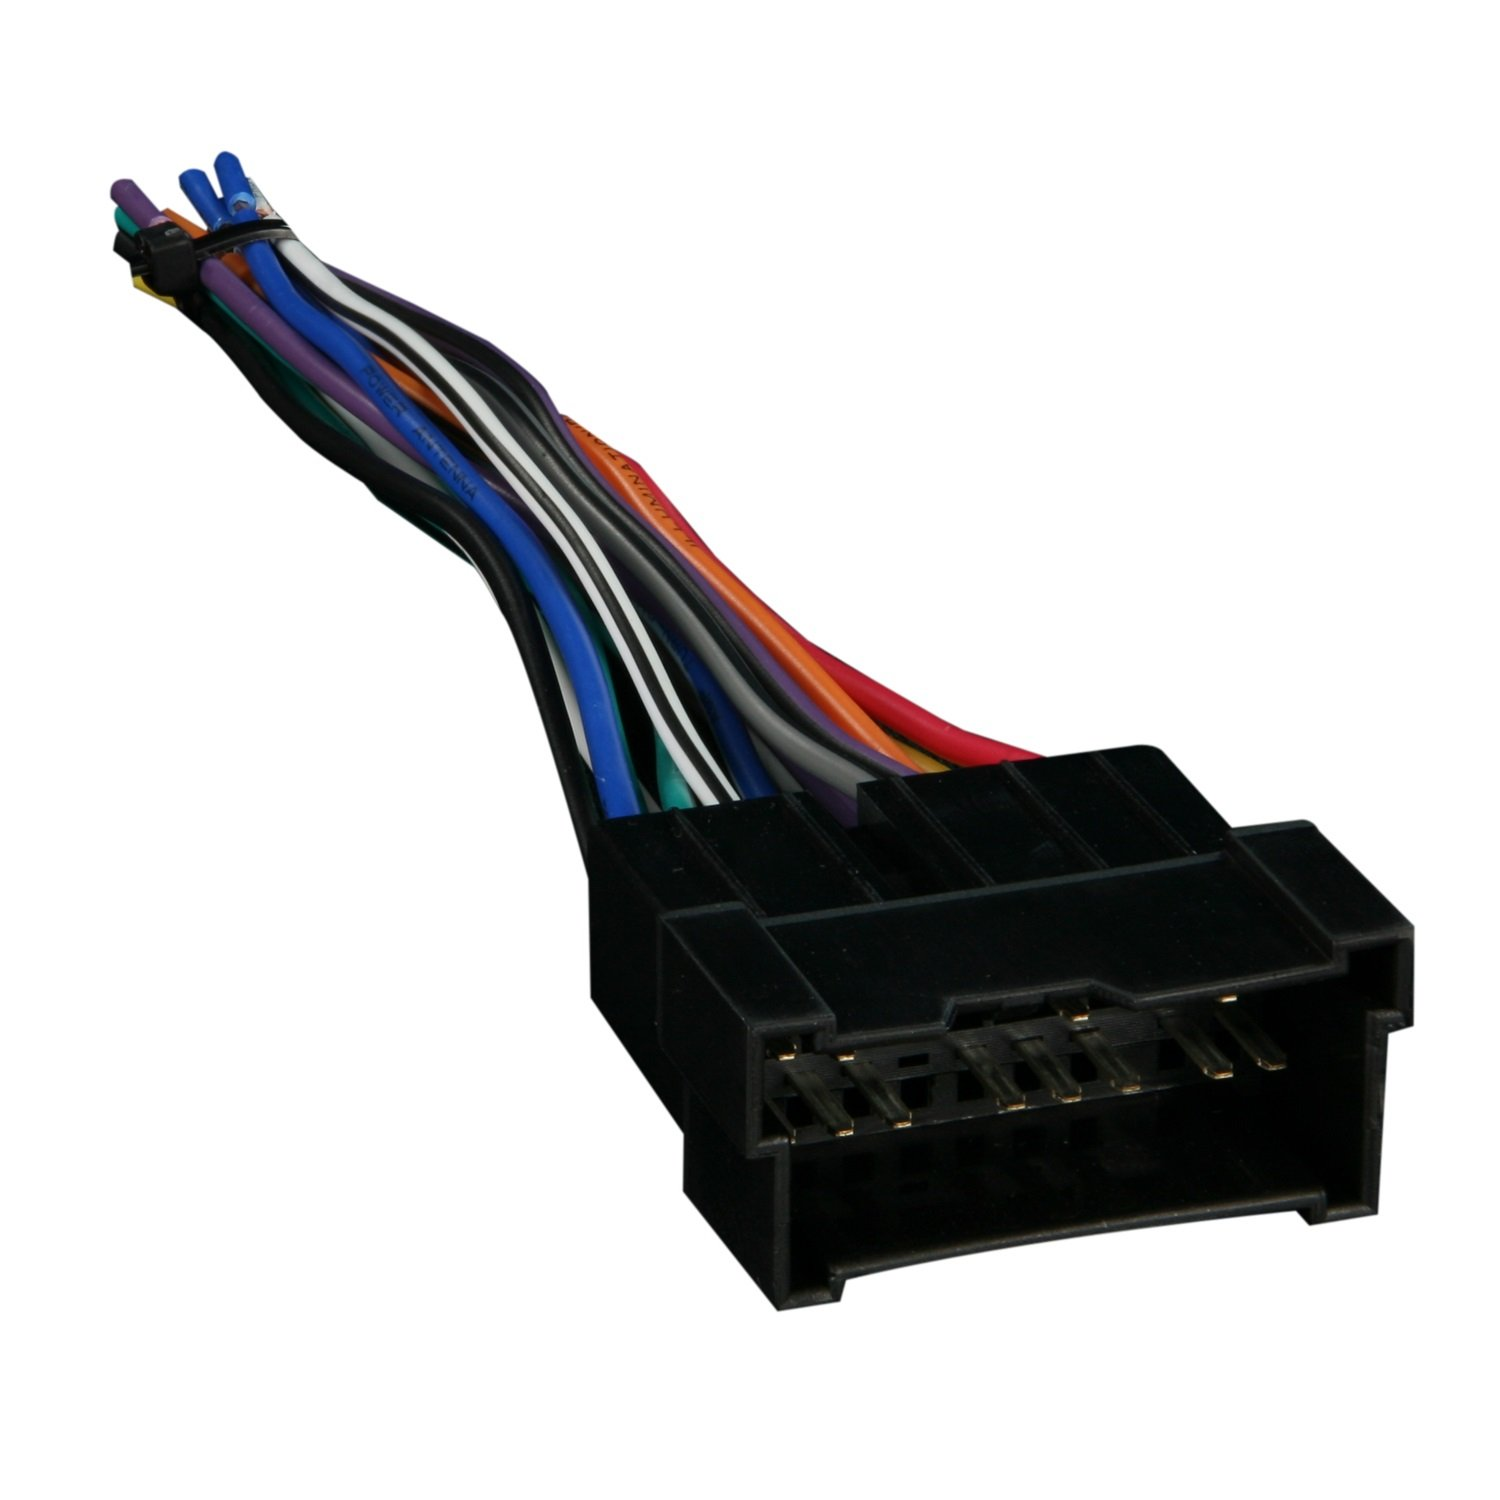 617yeBmOquL._SL1500_ amazon com metra 70 7301 radio wiring harness for hyundai kia 99 wire harness doesn't fit at panicattacktreatment.co